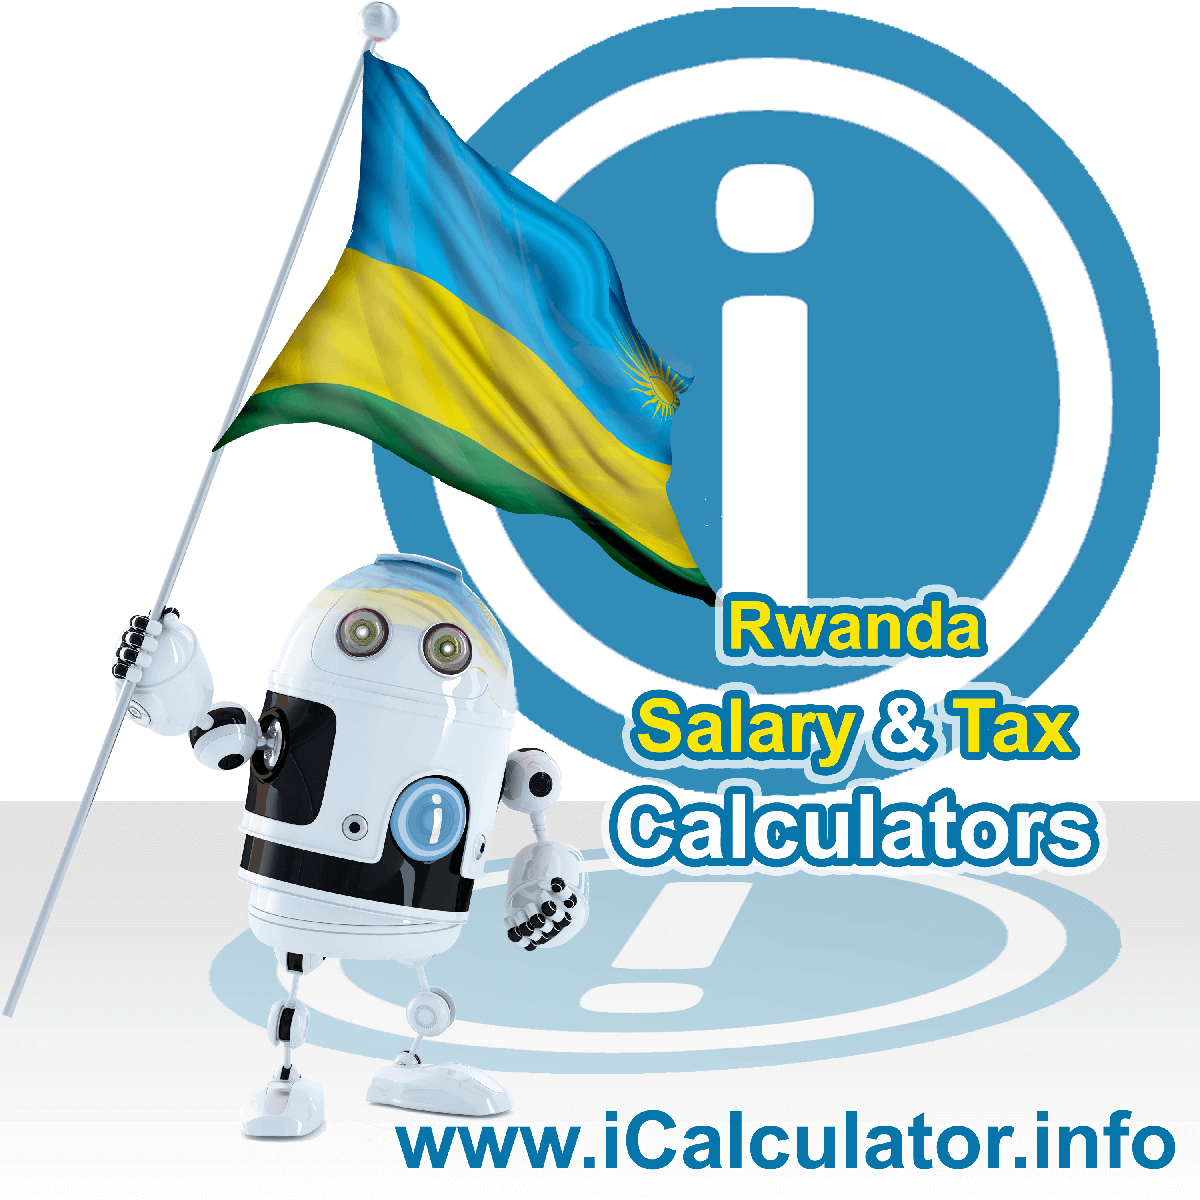 Rwanda Tax Calculator. This image shows the Rwanda flag and information relating to the tax formula for the Rwanda Salary Calculator